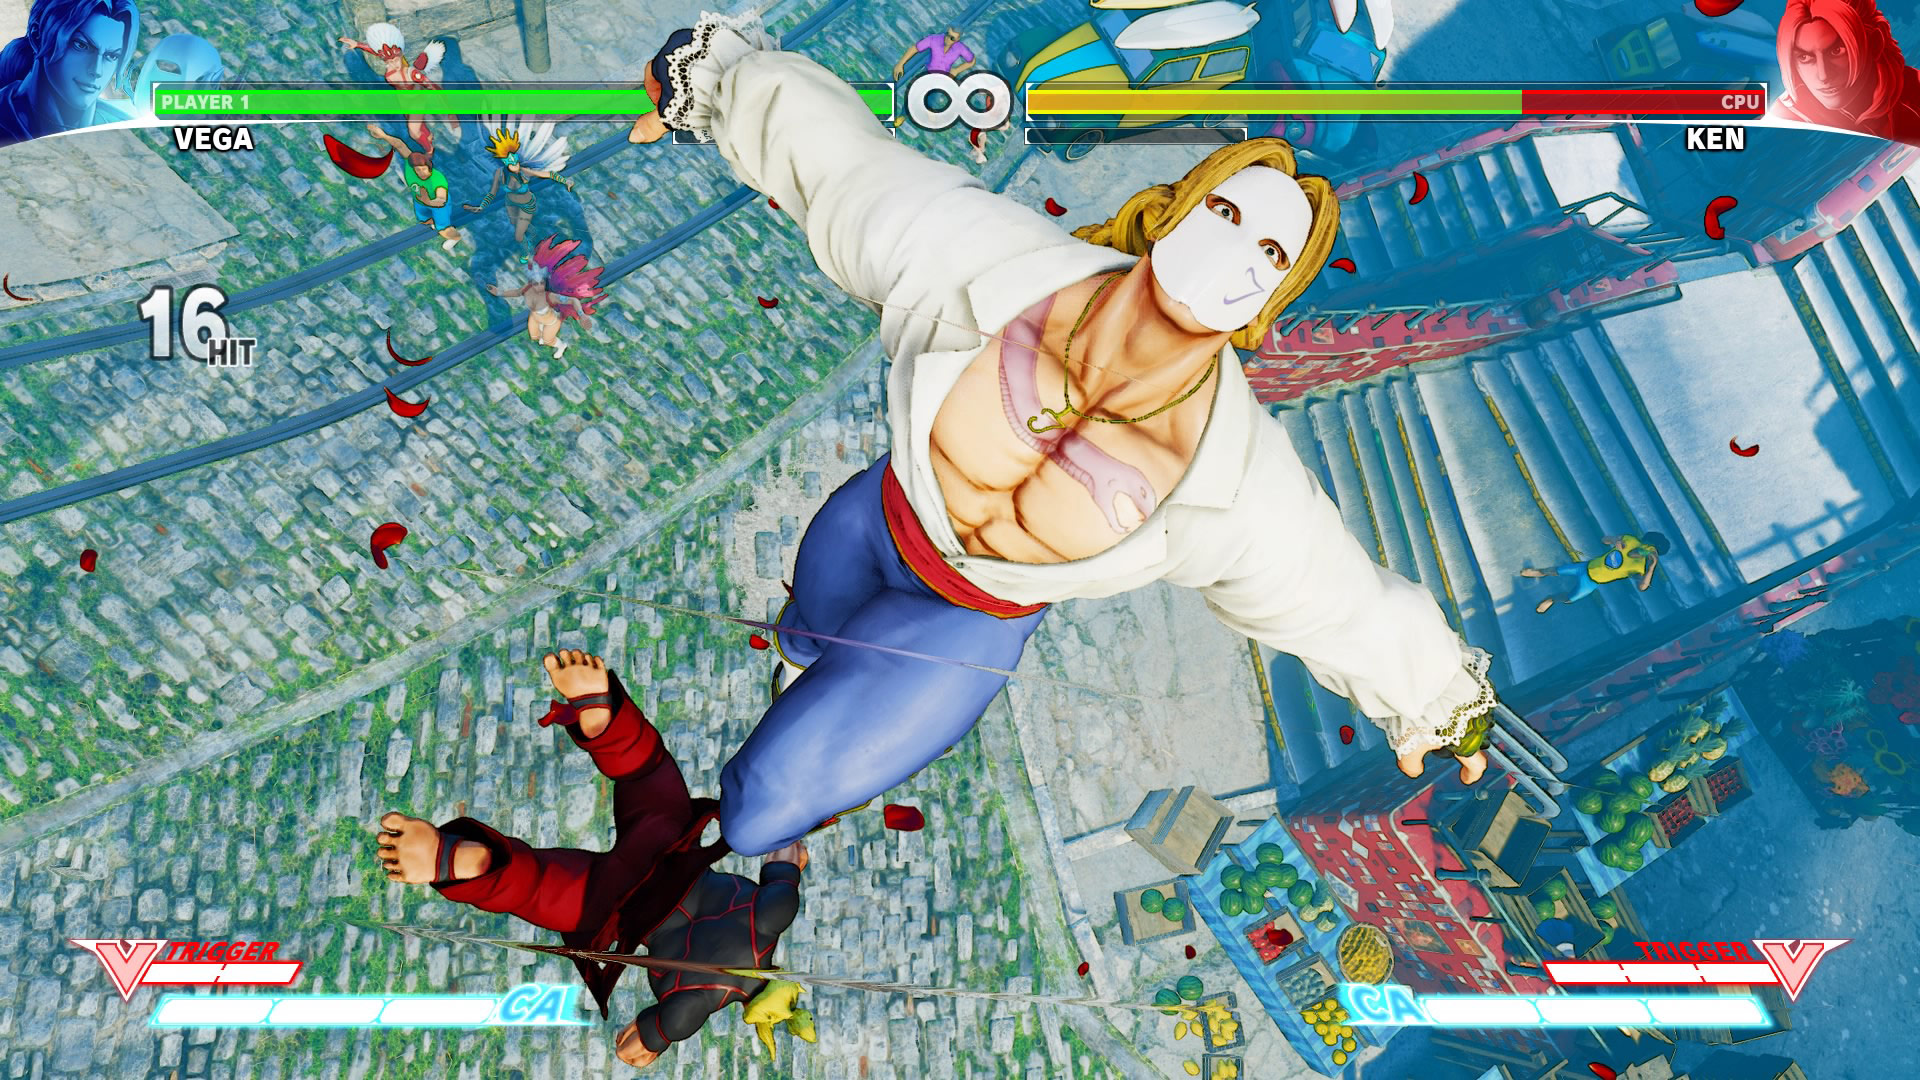 Street Fighter 5 review screenshots 3 out of 17 image gallery